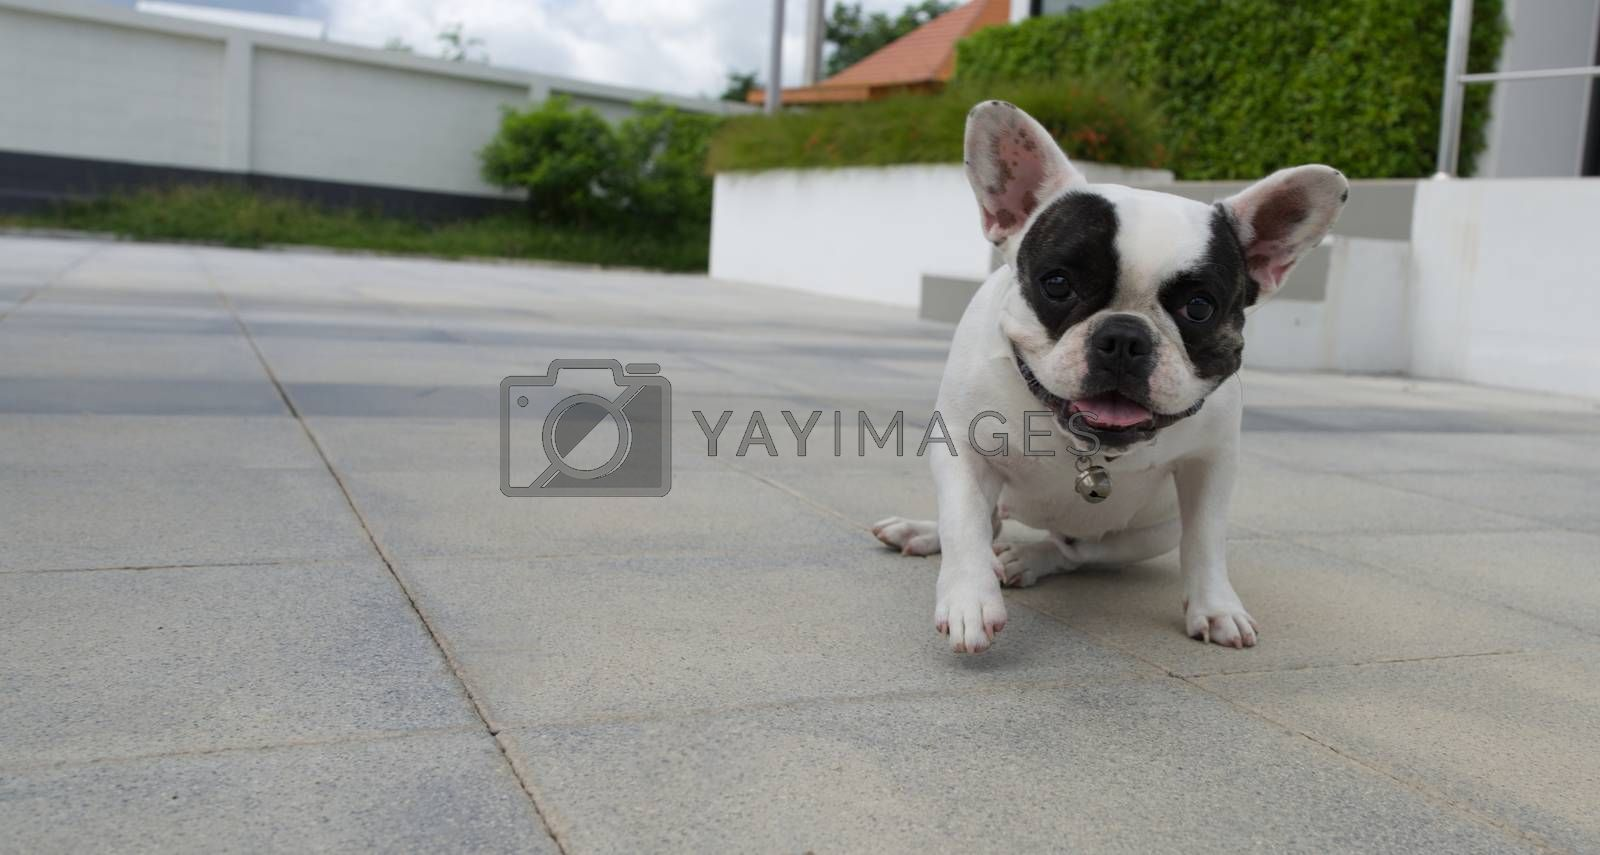 French bulldog on the sidewalk looking at the camera.